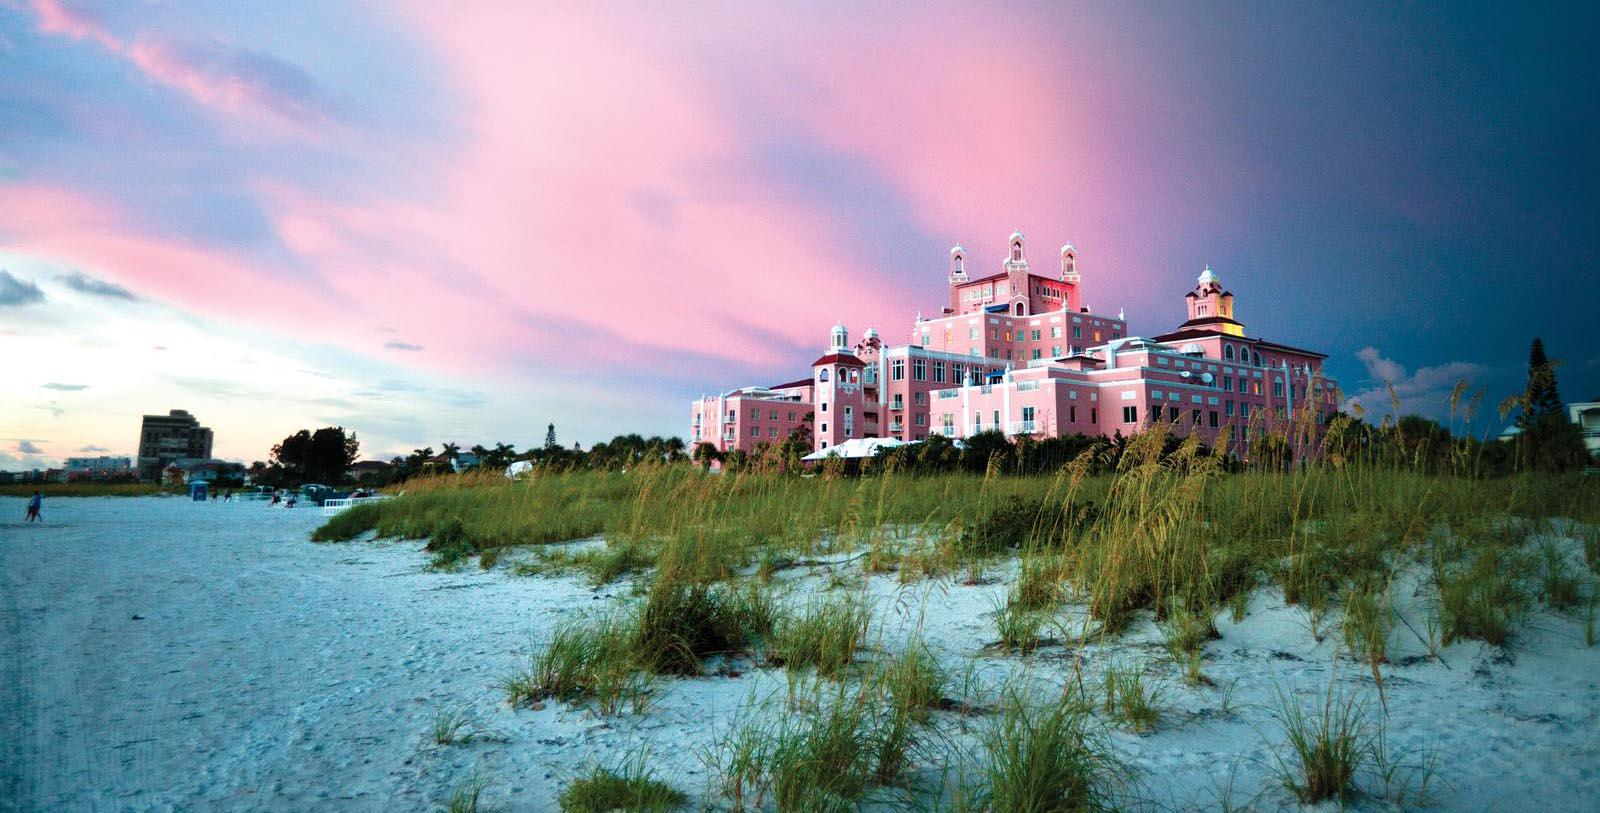 Image of Exterior with Beach The Don CeSar, 1928, Member of Historic Hotels of America, in St. Petersburg, Florida, Overview